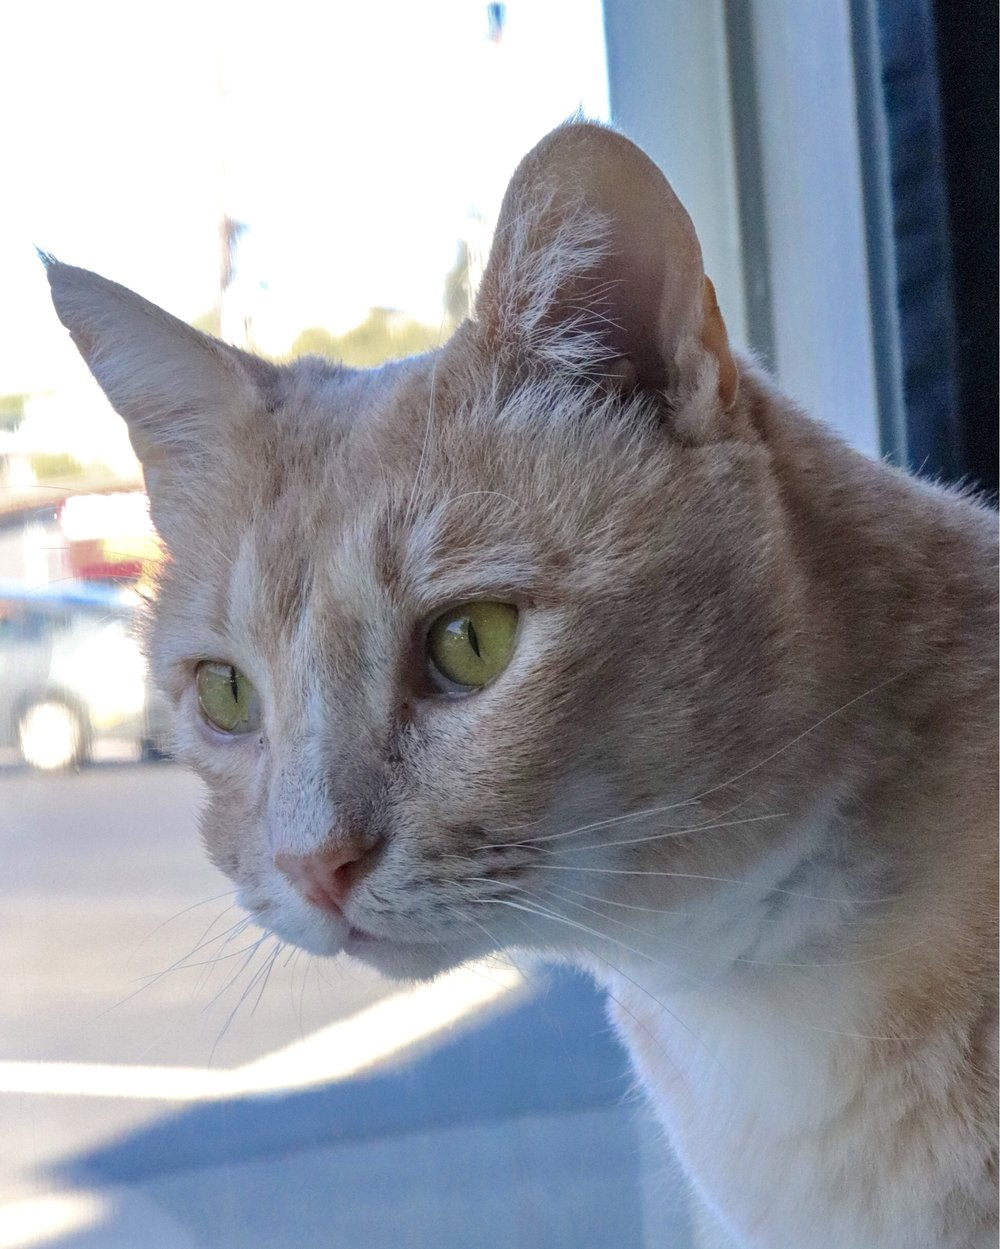 Romero during his stay at Cat Town Cafe and Adoption Center while he was awaiting adoption.  Photo Credit: Cat Town Cafe and Adoption Center